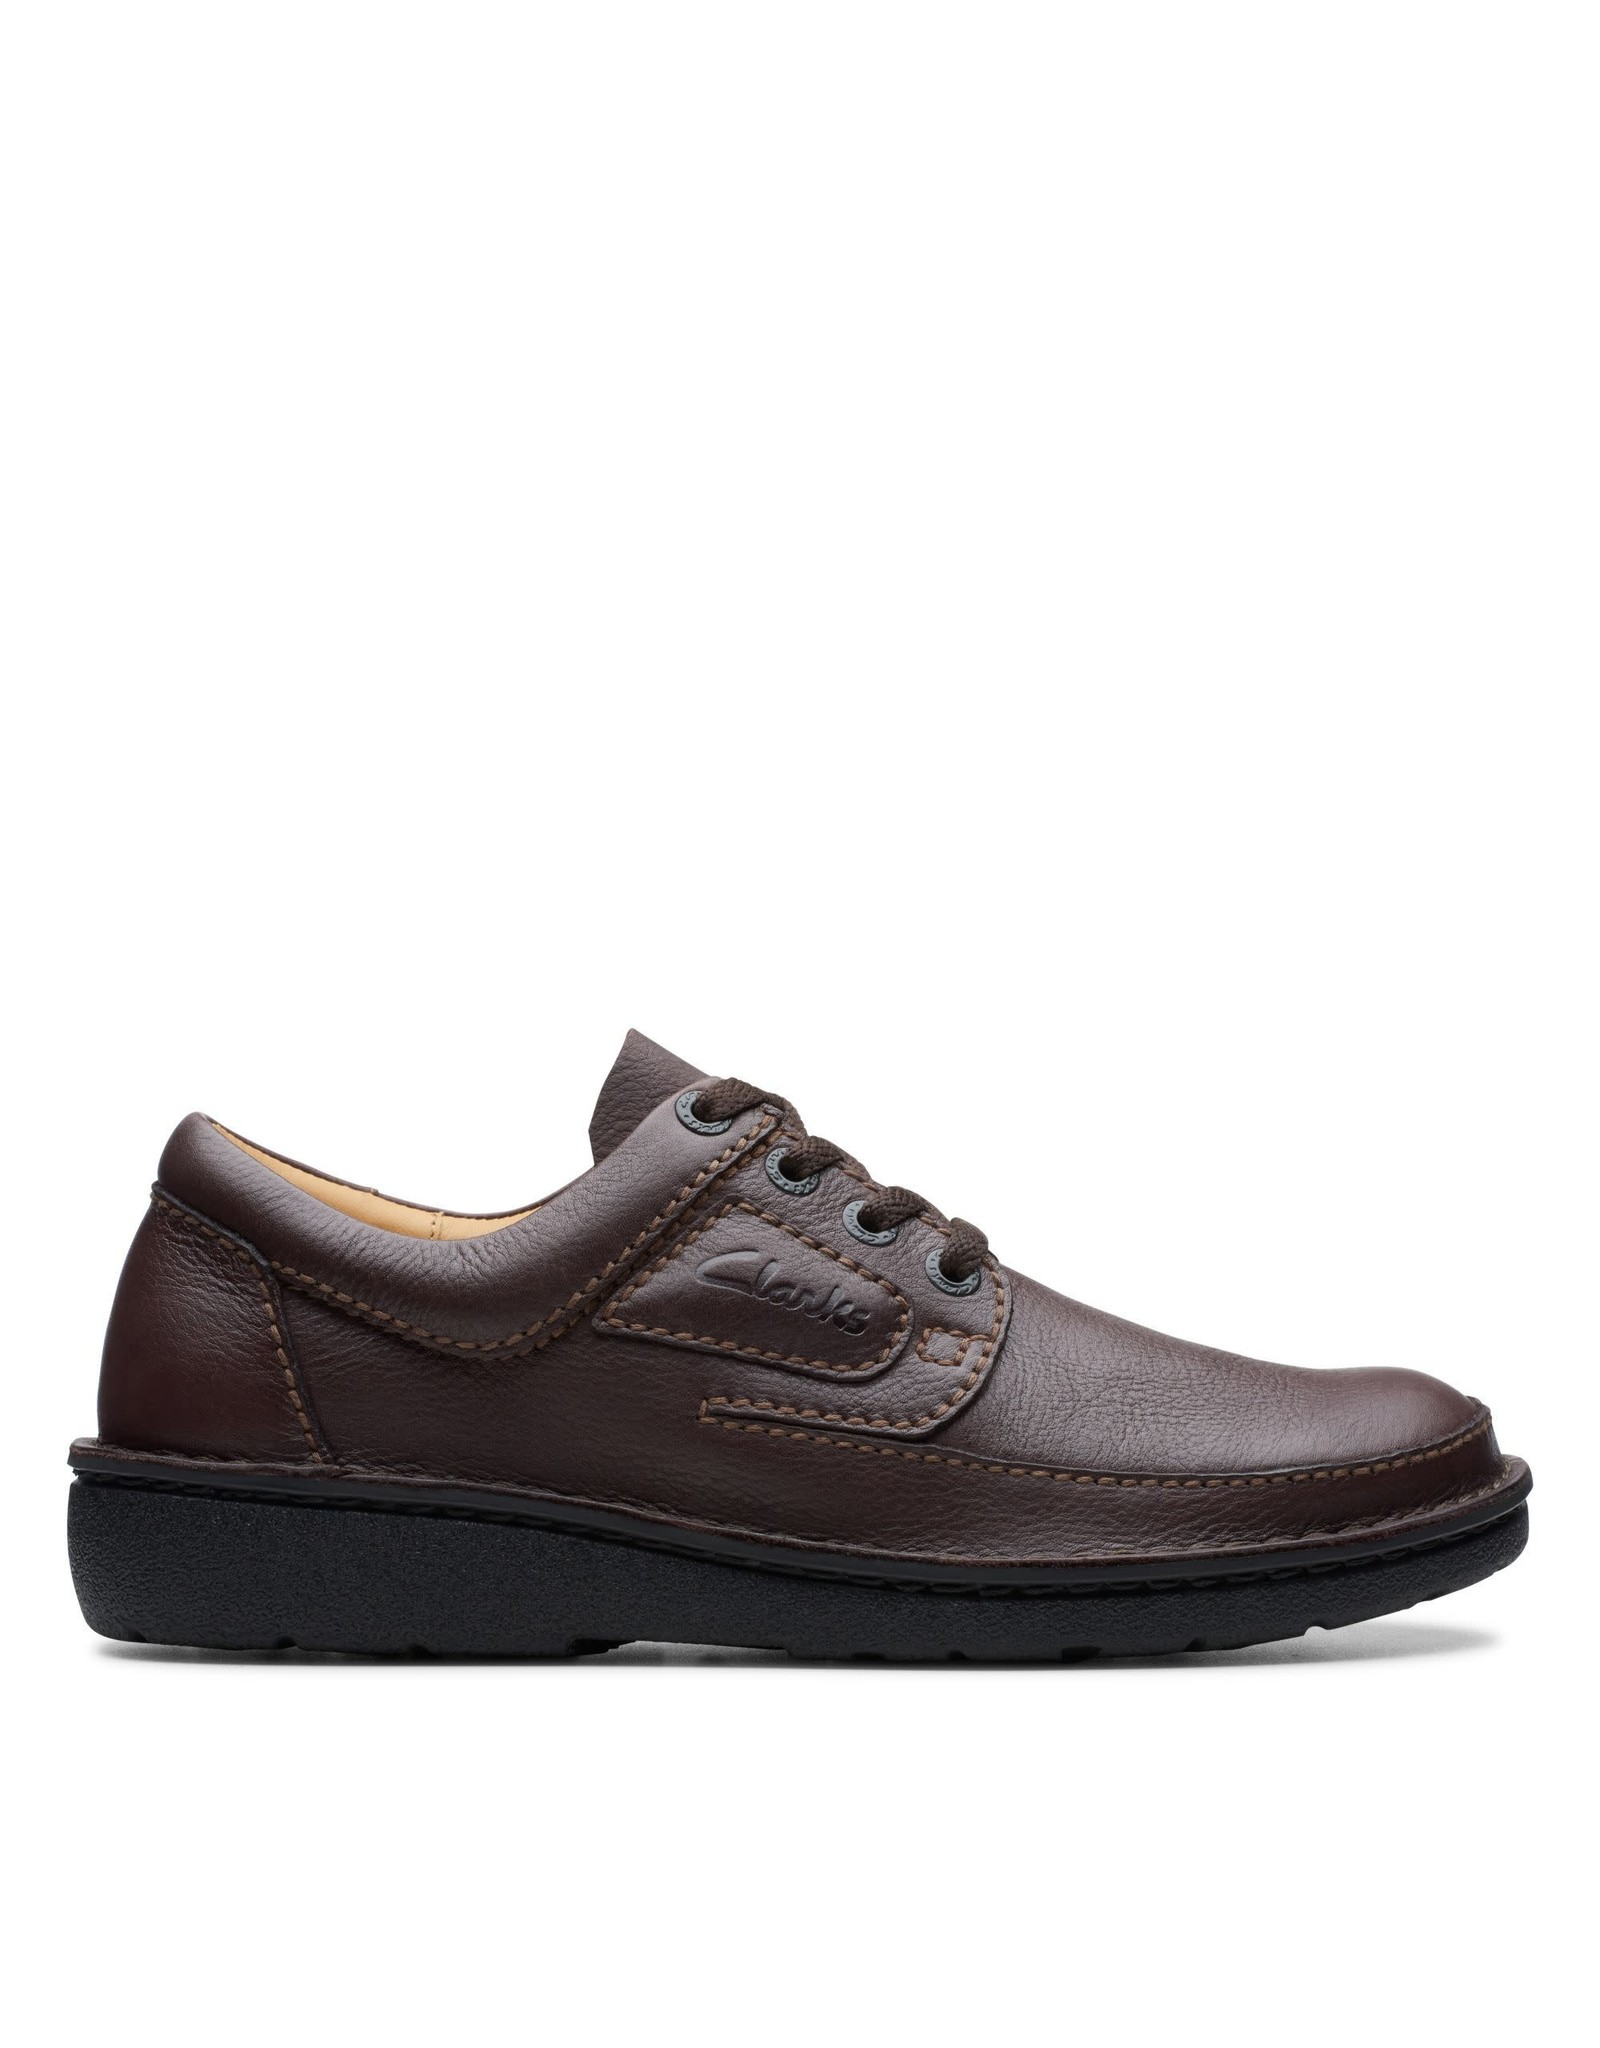 Clarks Nature 2 Brown